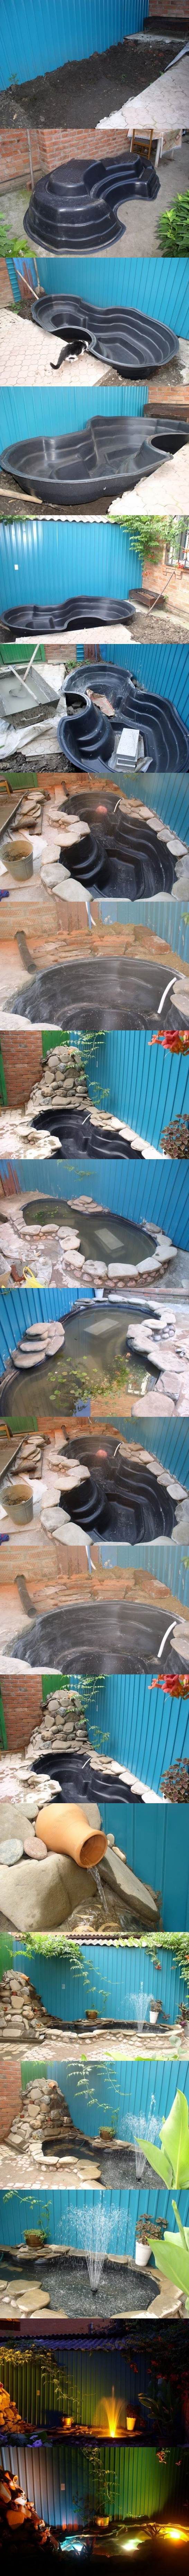 DIY Easy Pond in Backyard